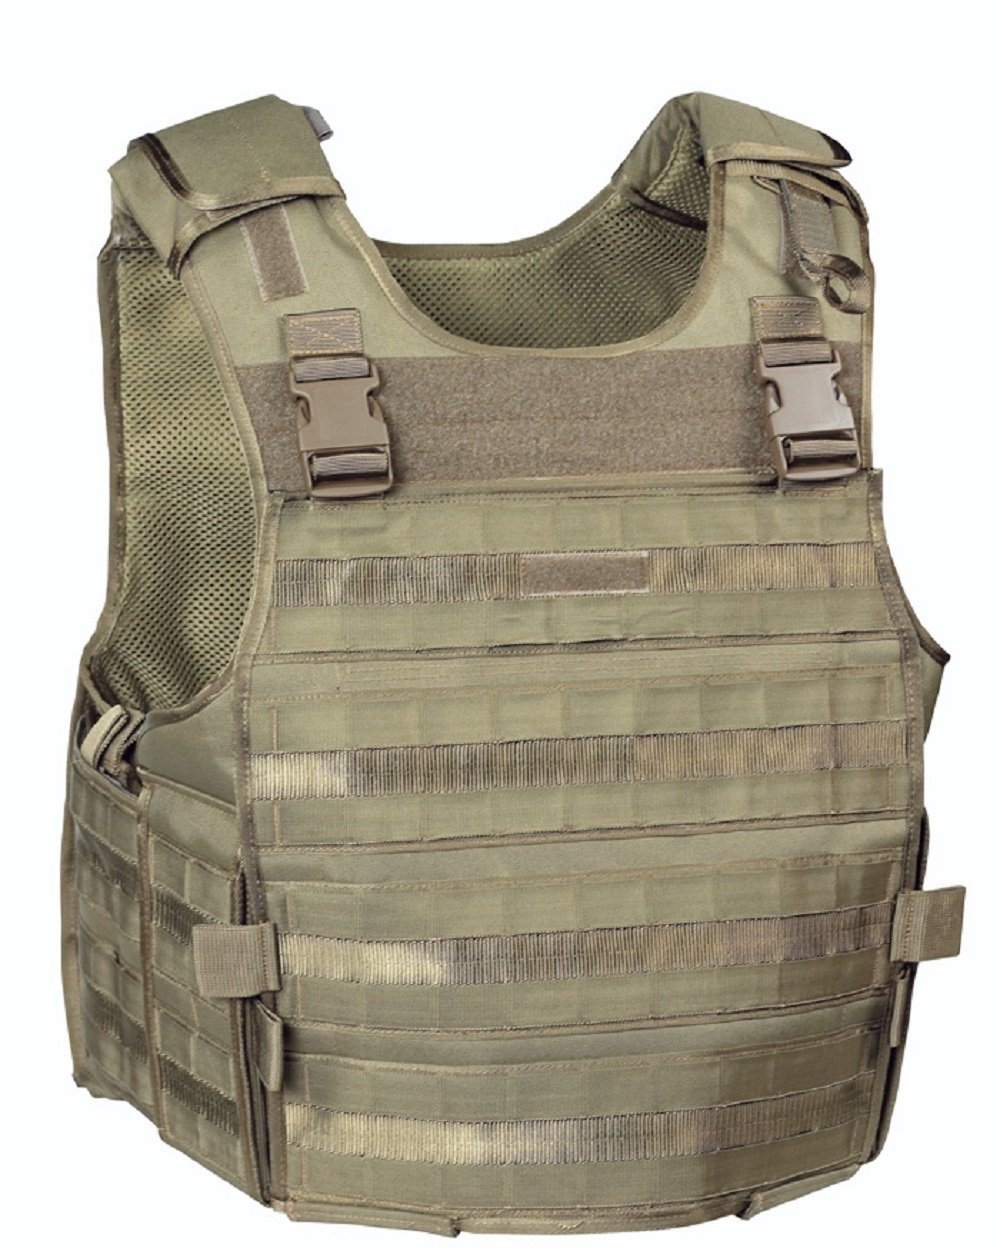 75Tactical Omega2 Plate Carrier - CHK-SHIELD | Outdoor Army - Tactical Gear Shop